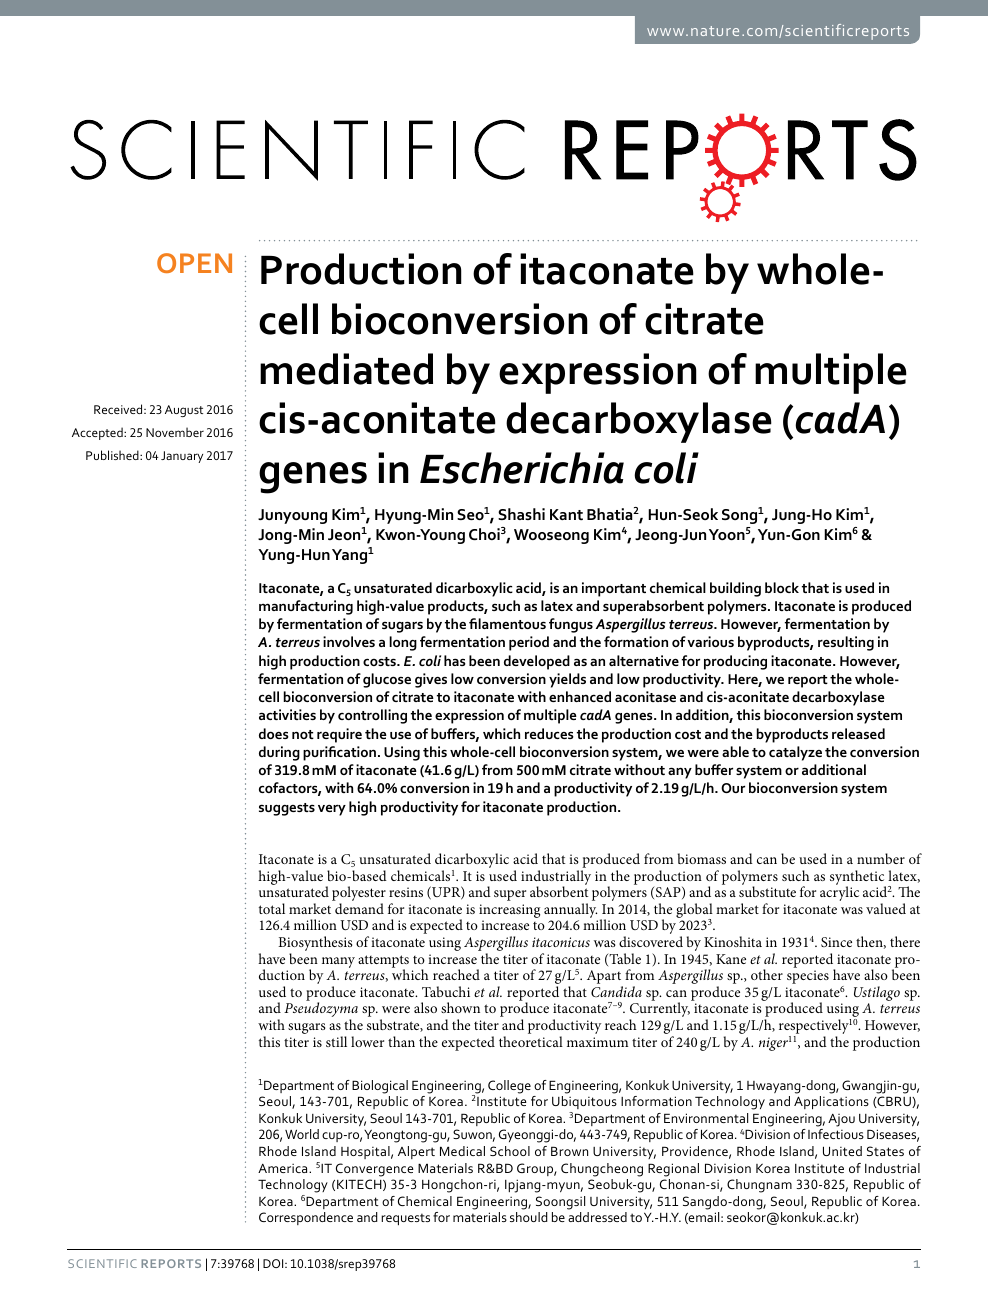 Production of itaconate by whole-cell bioconversion of citrate